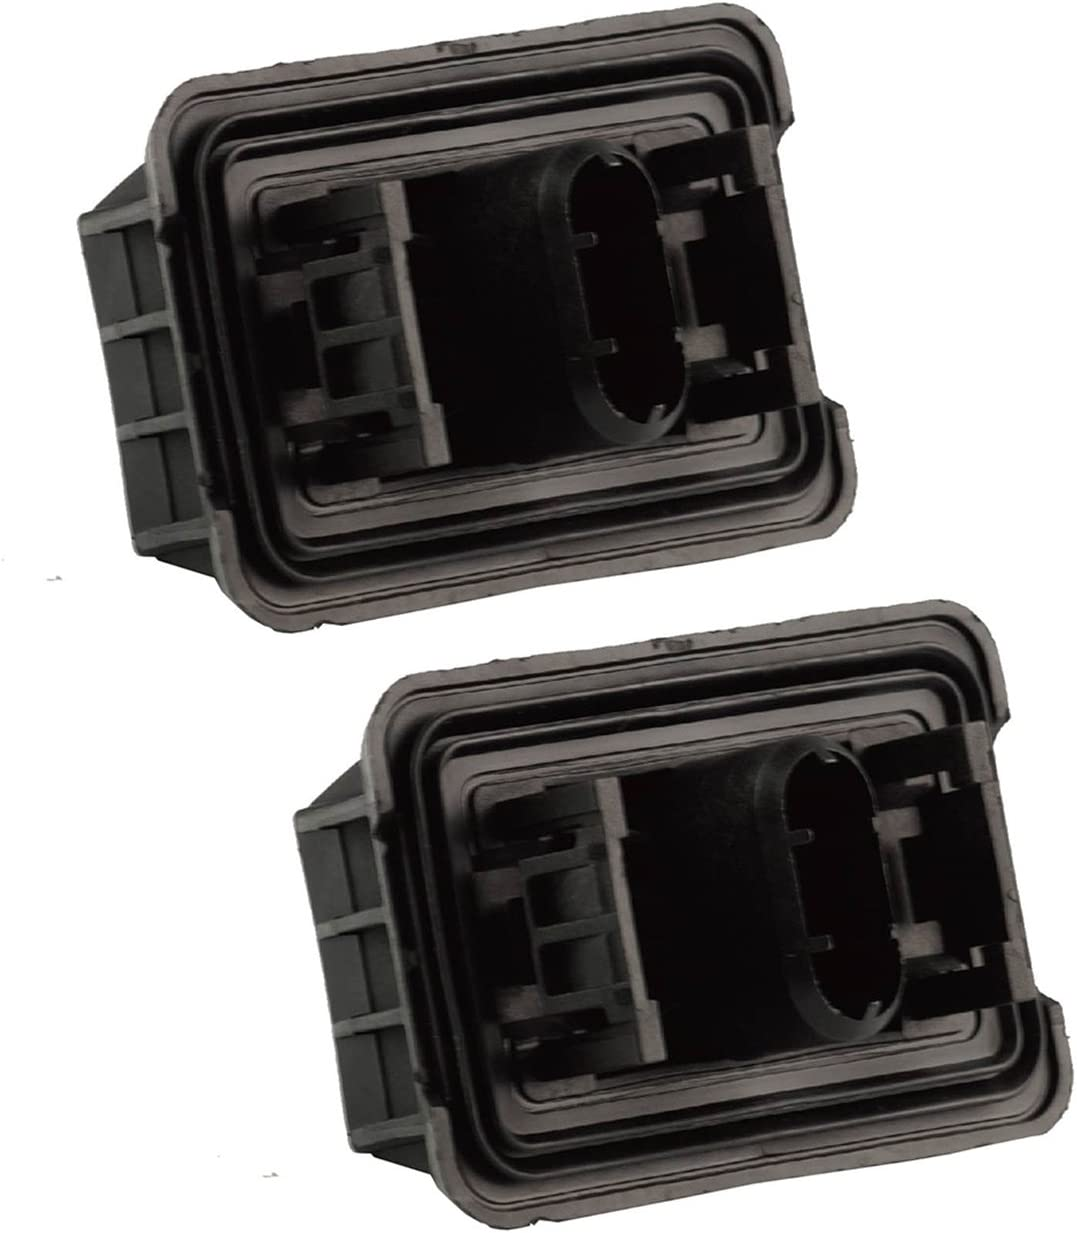 AUTOPA Challenge the lowest Spring new work price 51717237195 Jack Pad for 2 BMW Pack of